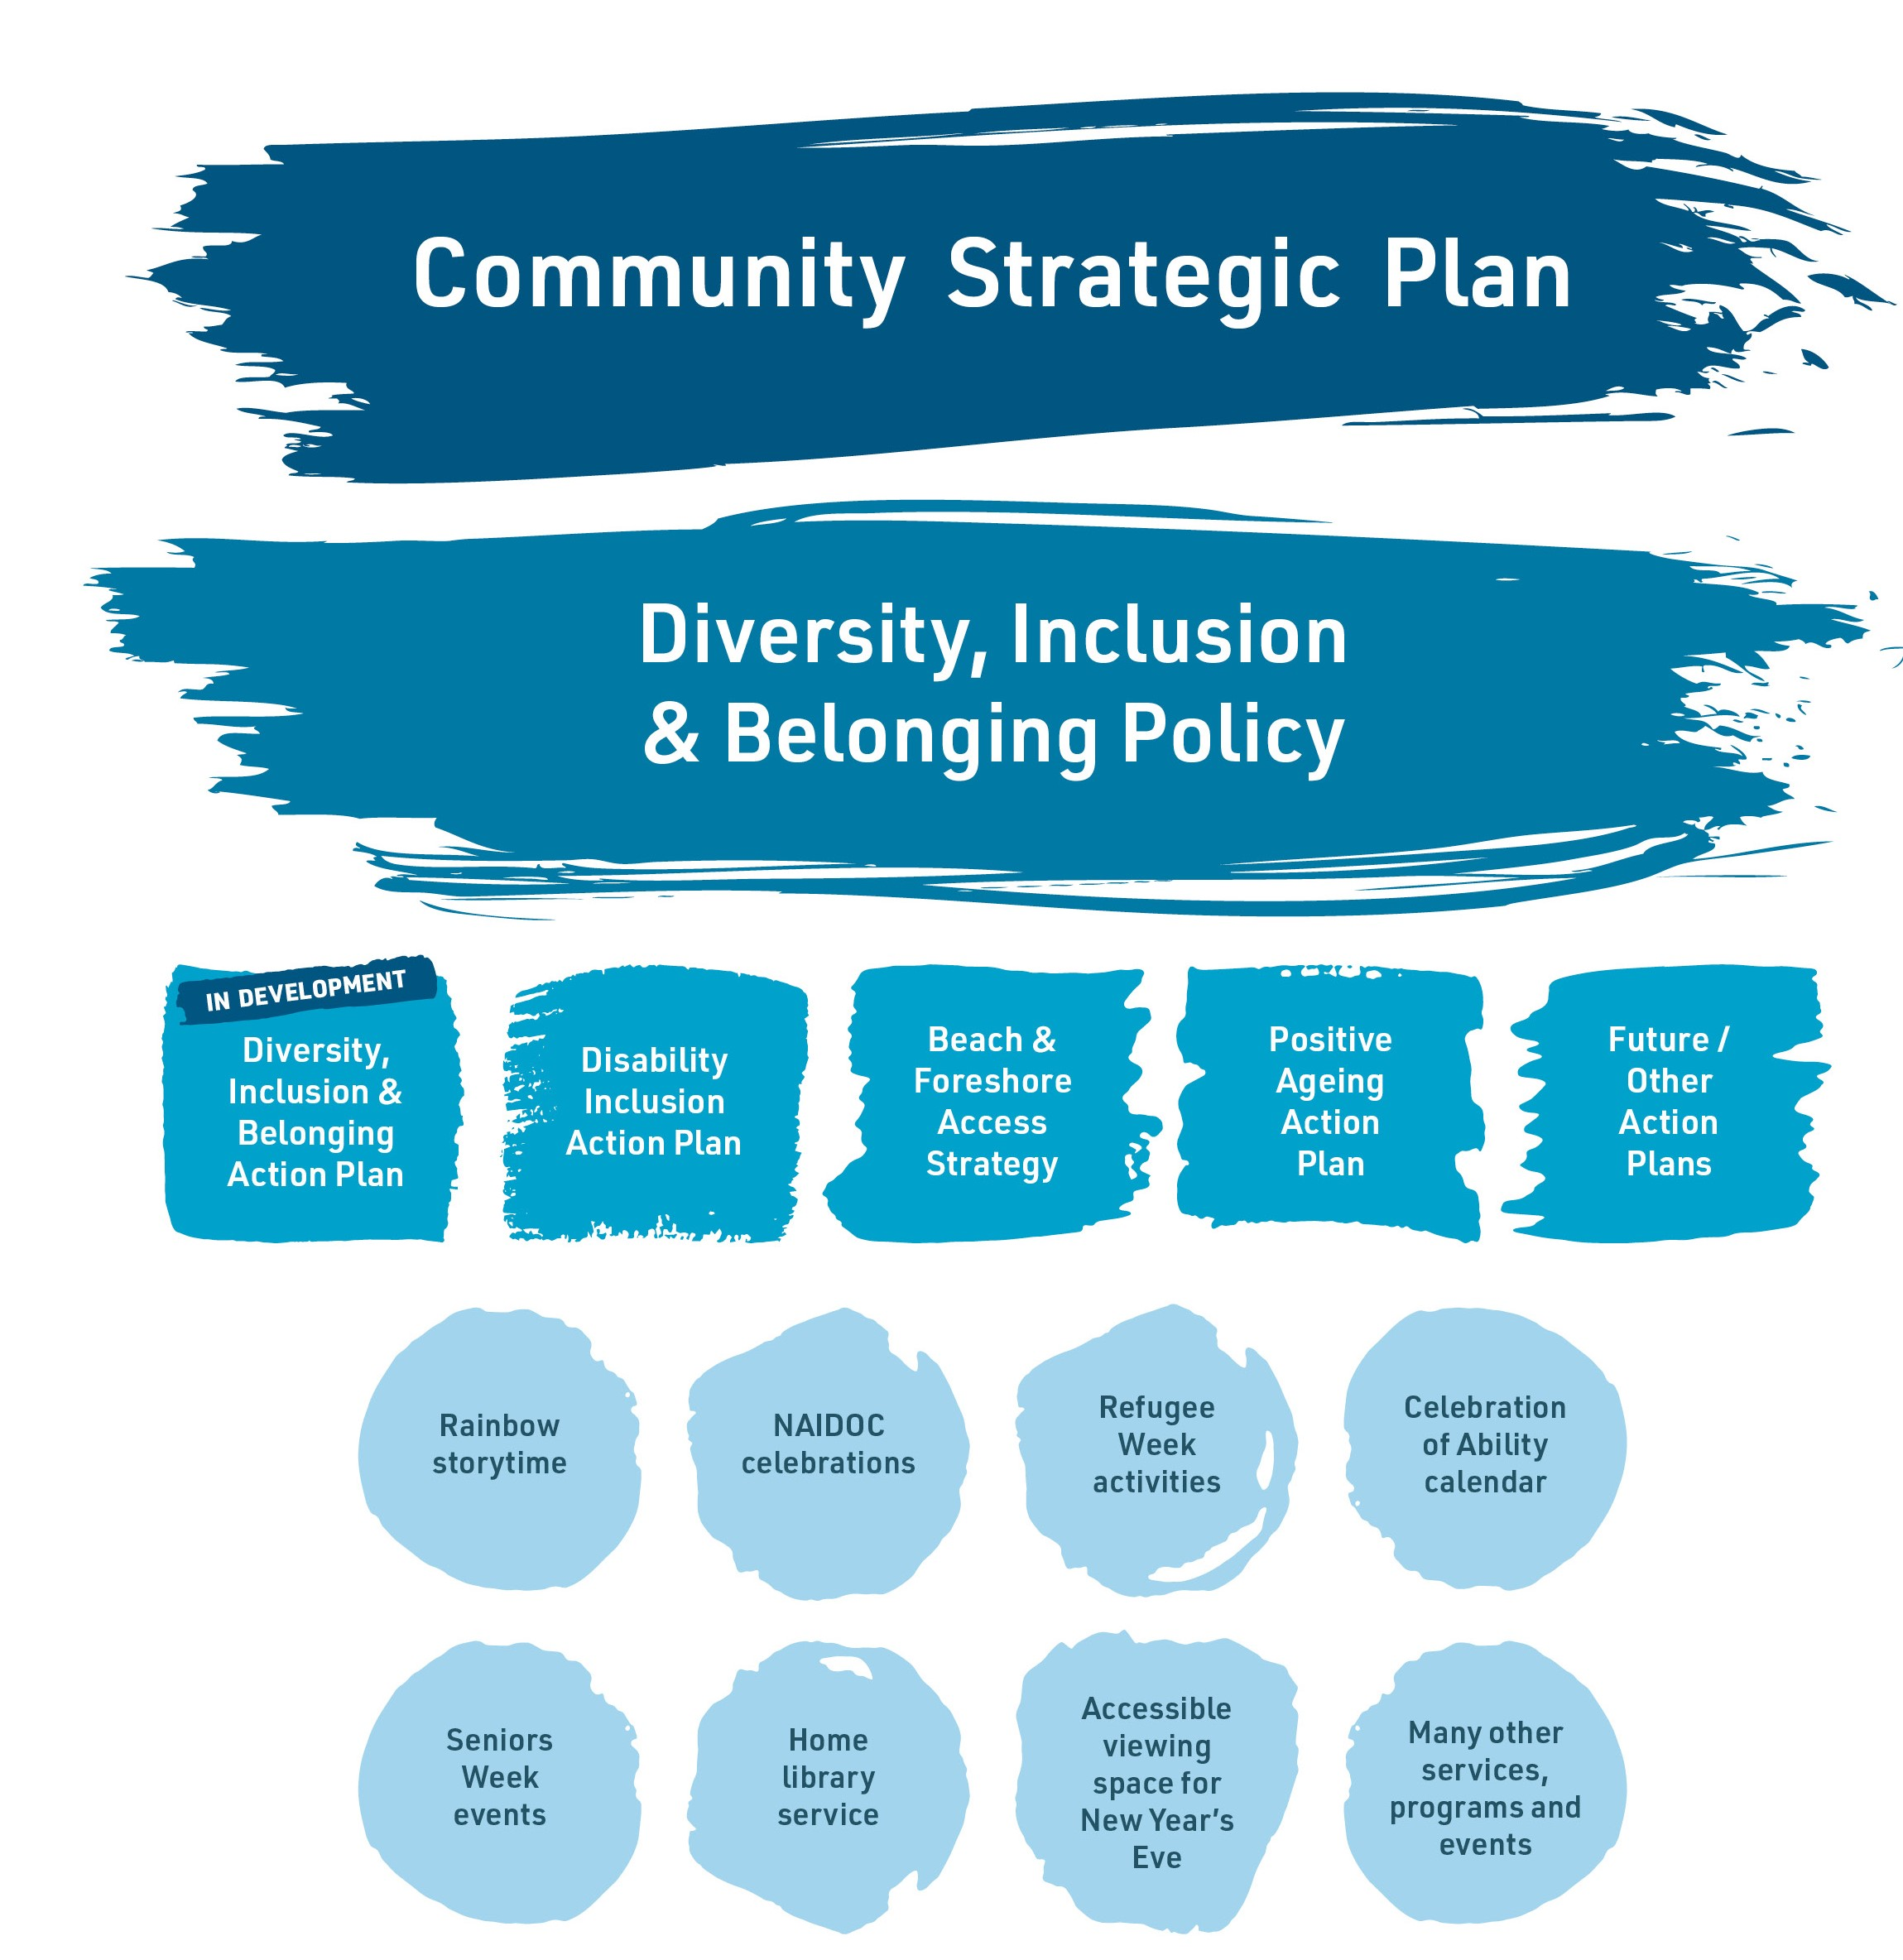 The image shows a simple flow chart. At the top is the Community Strategic Plan. Under this is the Diversity, Inclusion and Belonging Policy. These two documents support and guide all of our work through supporting documents such as Diversity, Inclusion and Belonging Action Plan (in development), Disability Inclusion Action Plan, Beach and Foreshore Access Strategy, Positive Ageing Action Plan and other future plans.